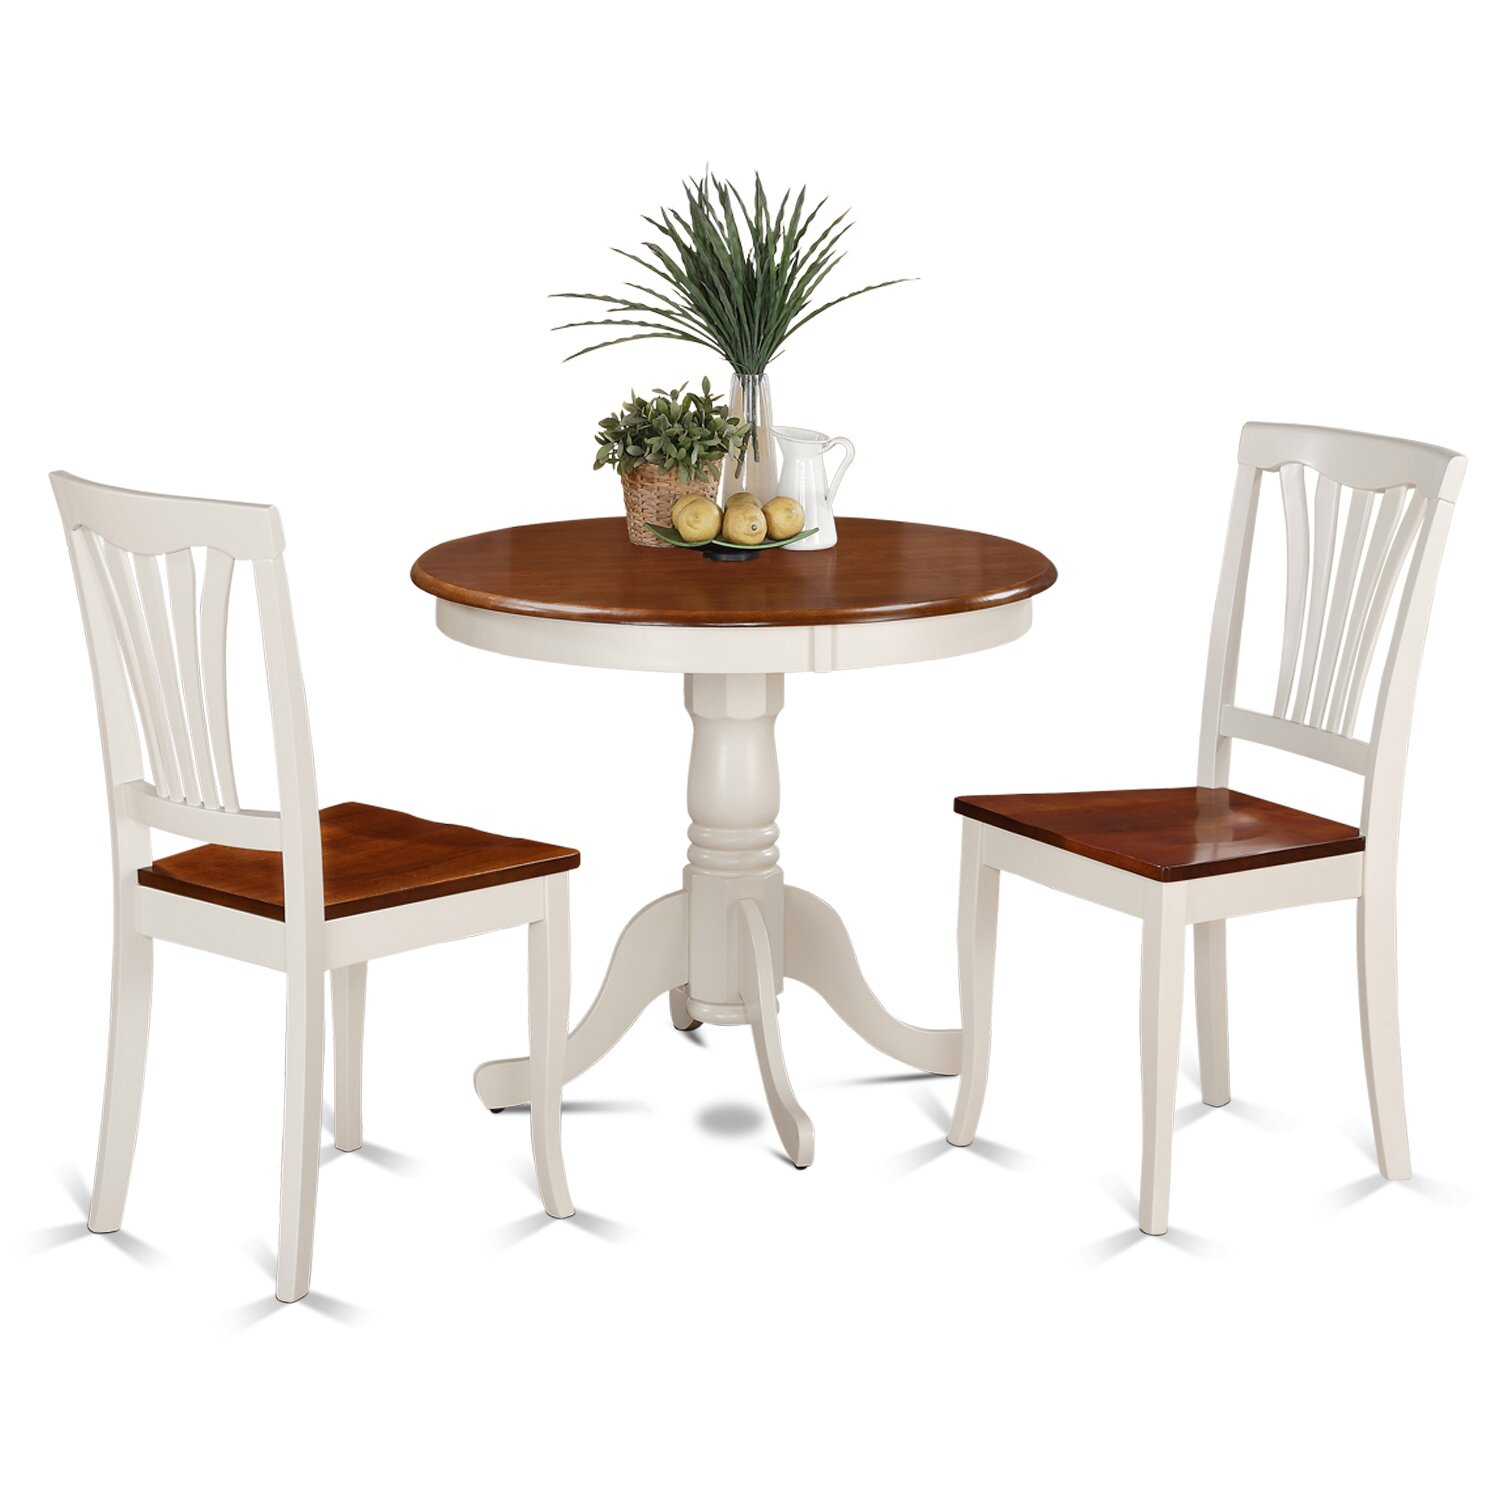 Wooden Importers 3 Piece Dining Set Reviews: Wooden Importers Bristol 3 Piece Dining Set & Reviews